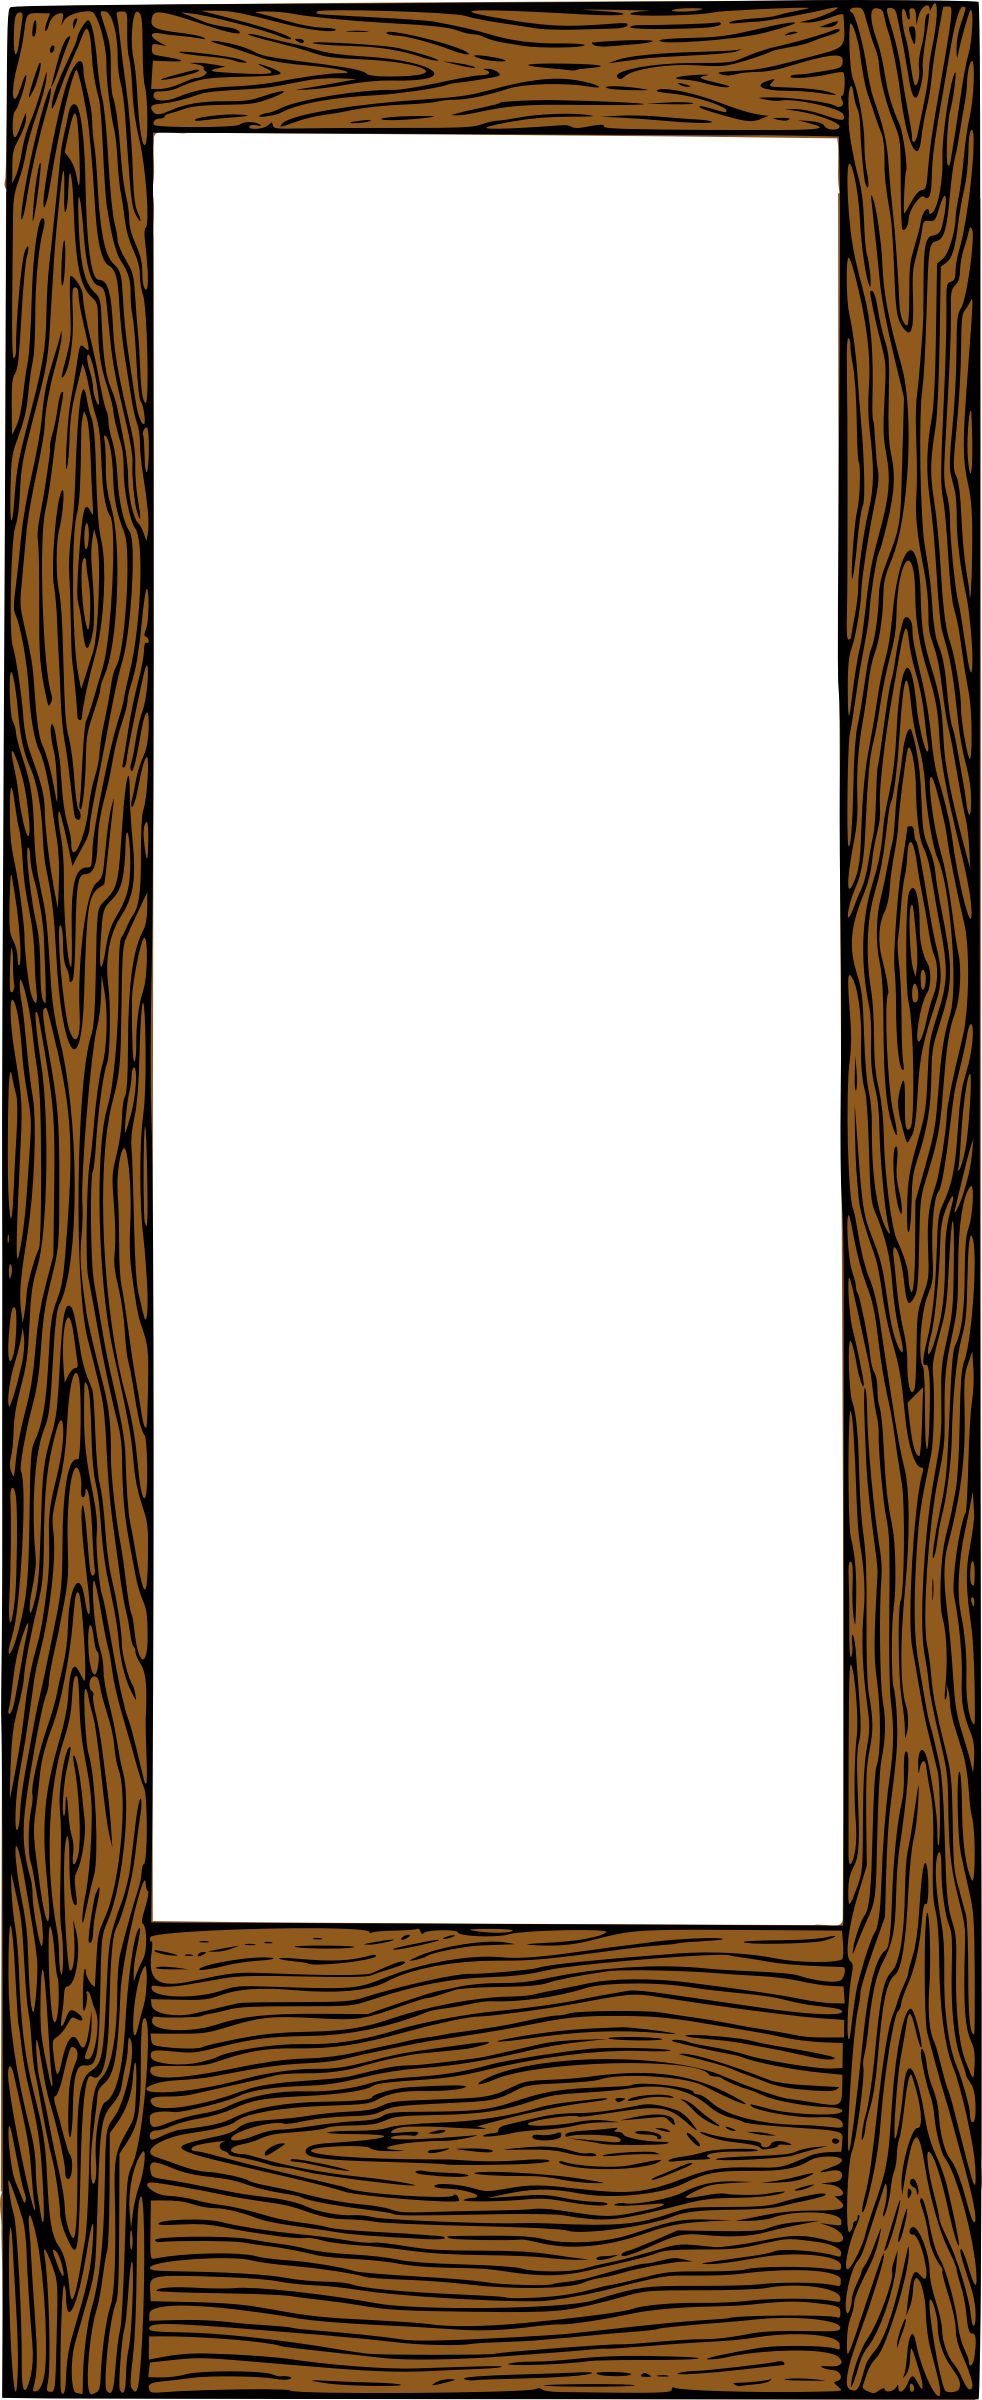 Clipart colour big image. Wooden frame png